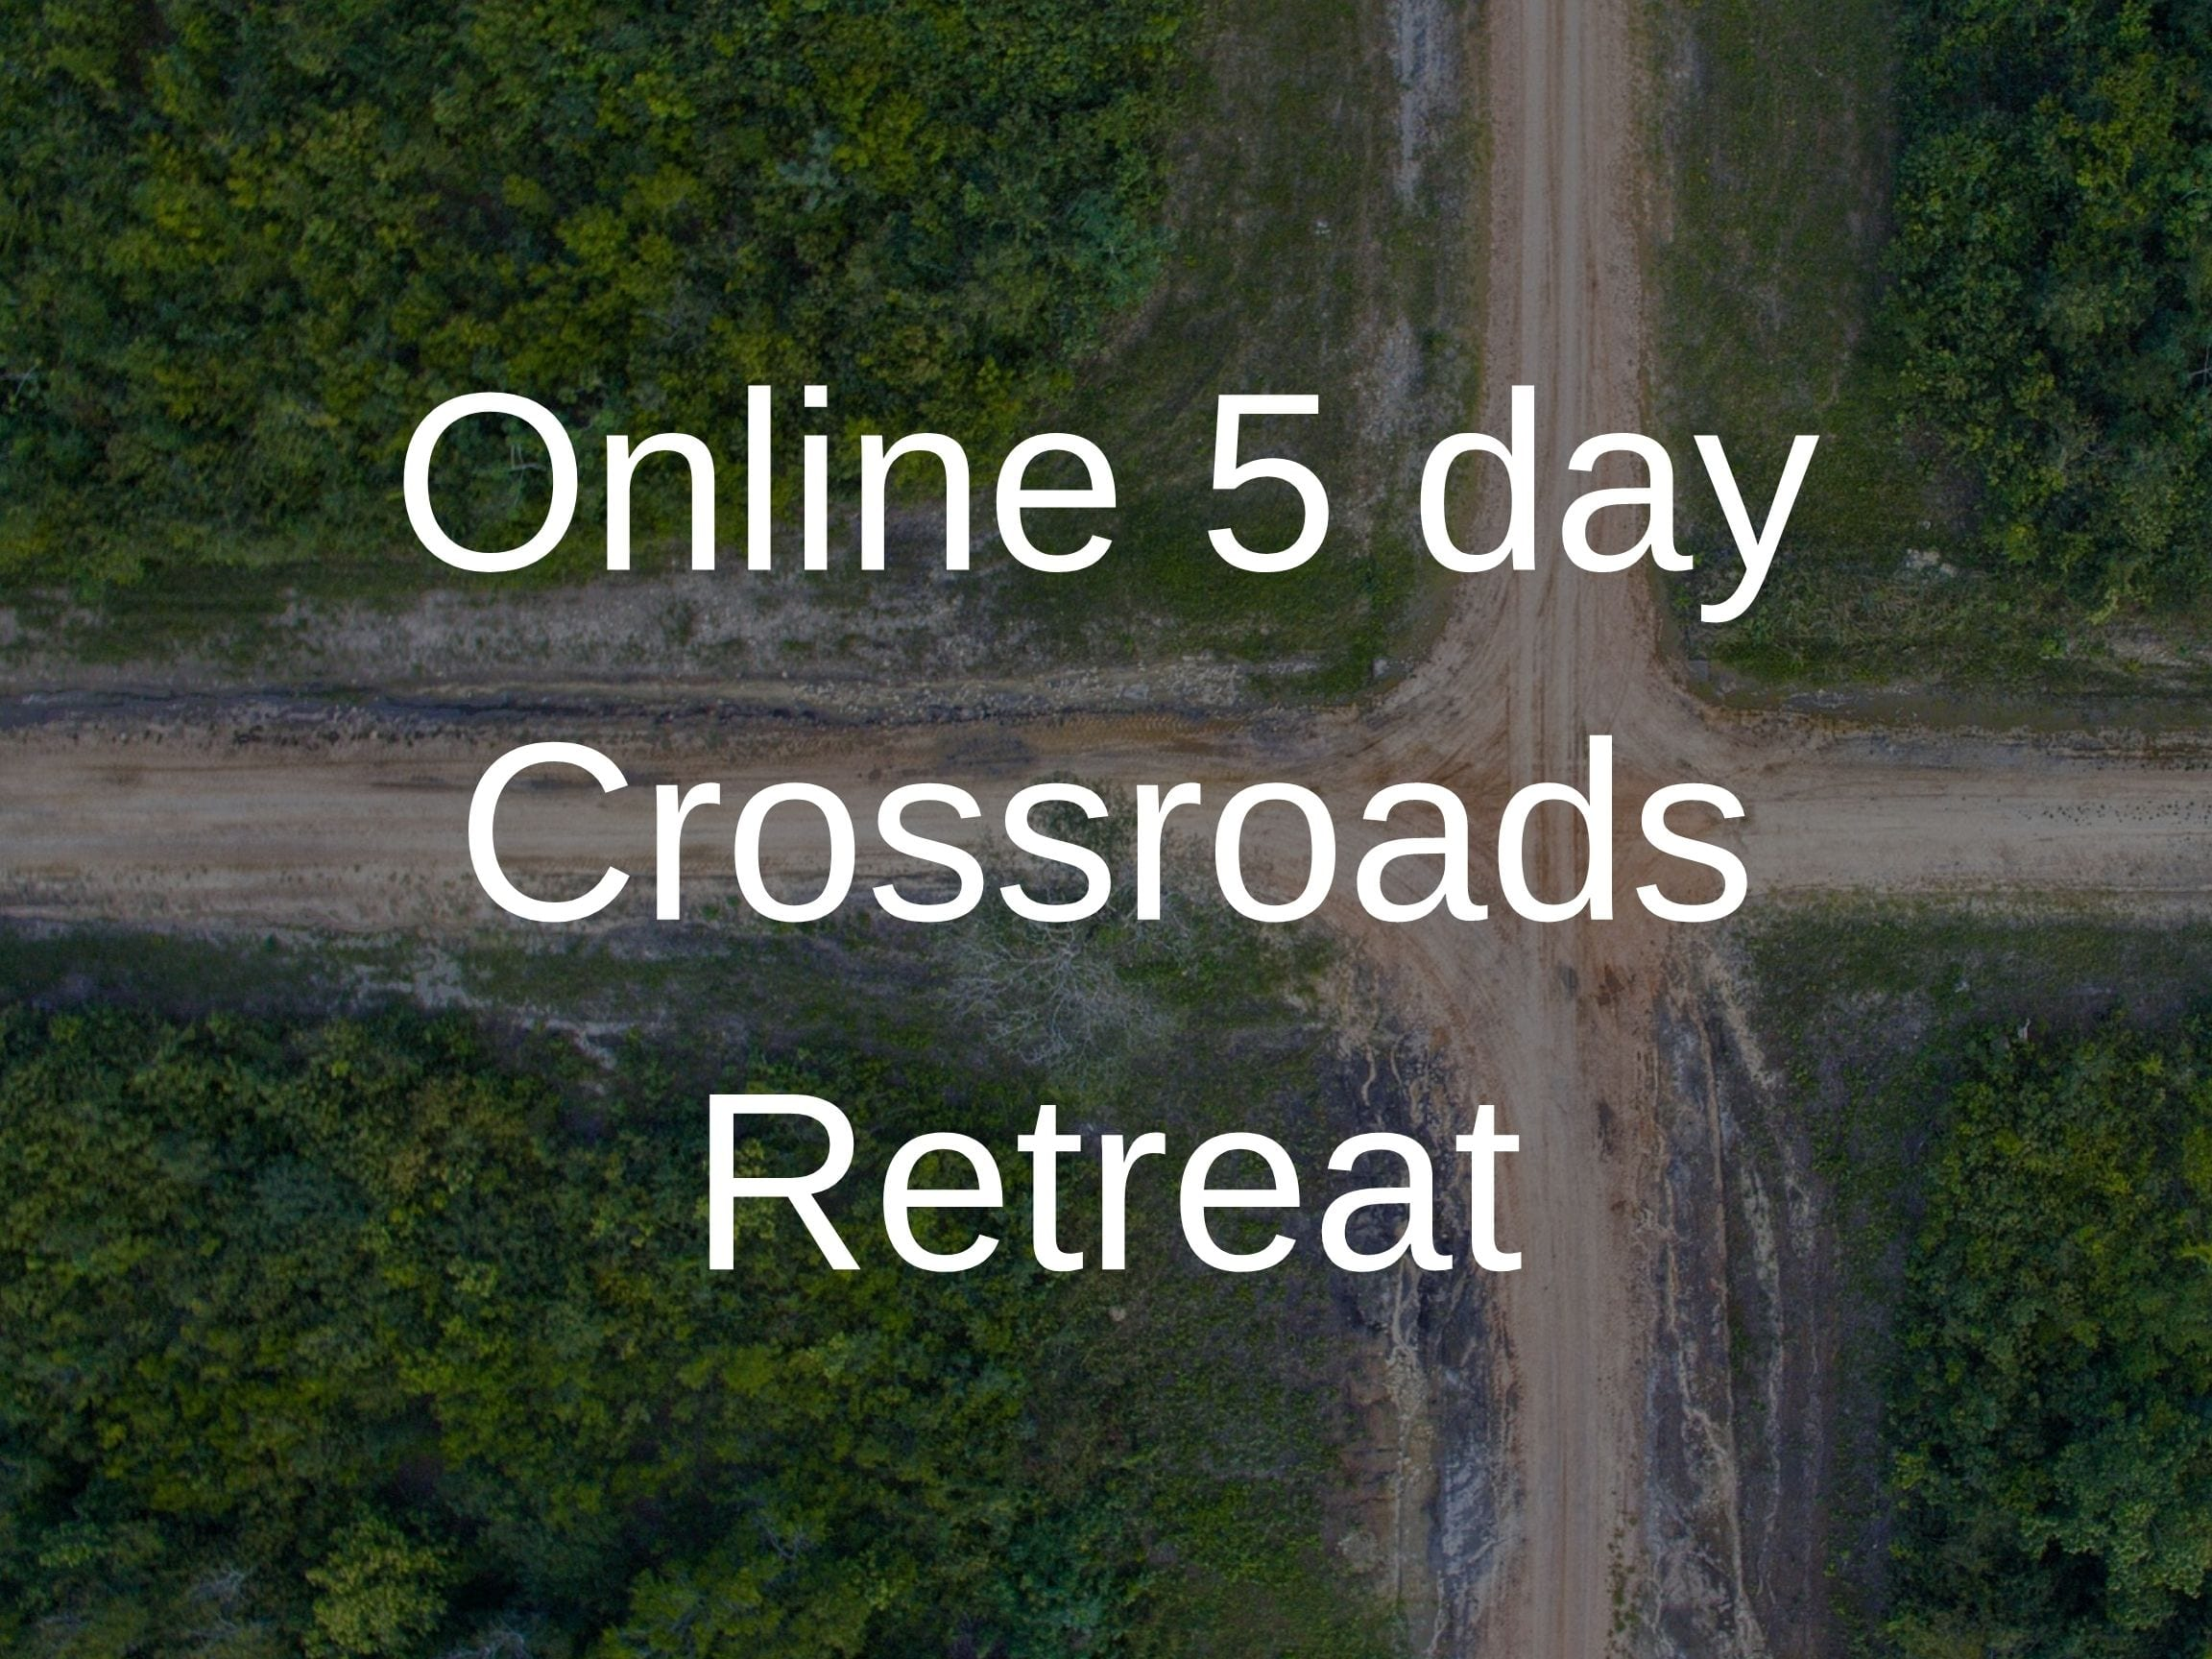 Online 5 day Crossroads Retreat